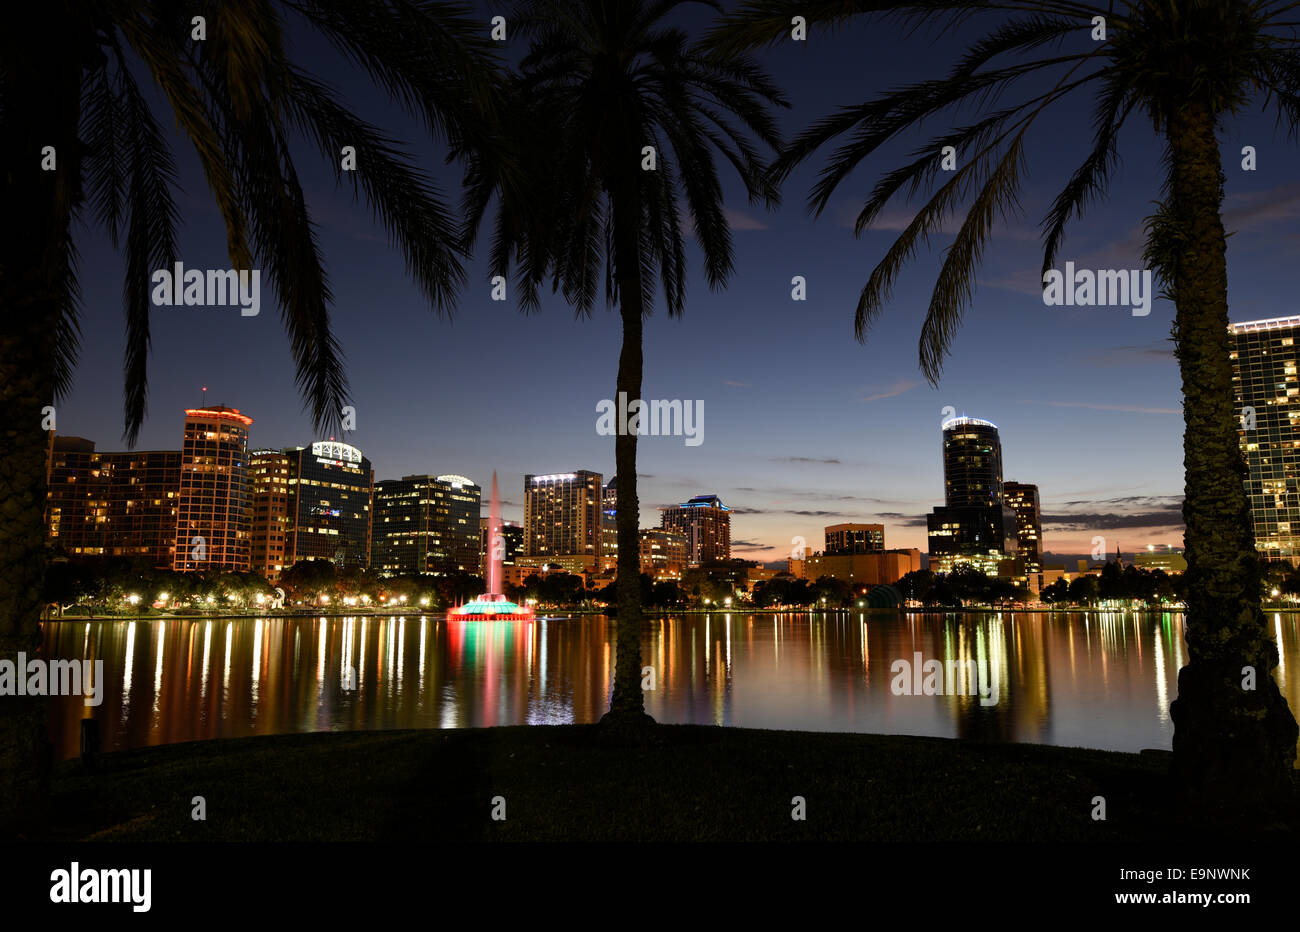 View from Lake Eola of downtown Orlando, Florida at sunset. - Stock Image